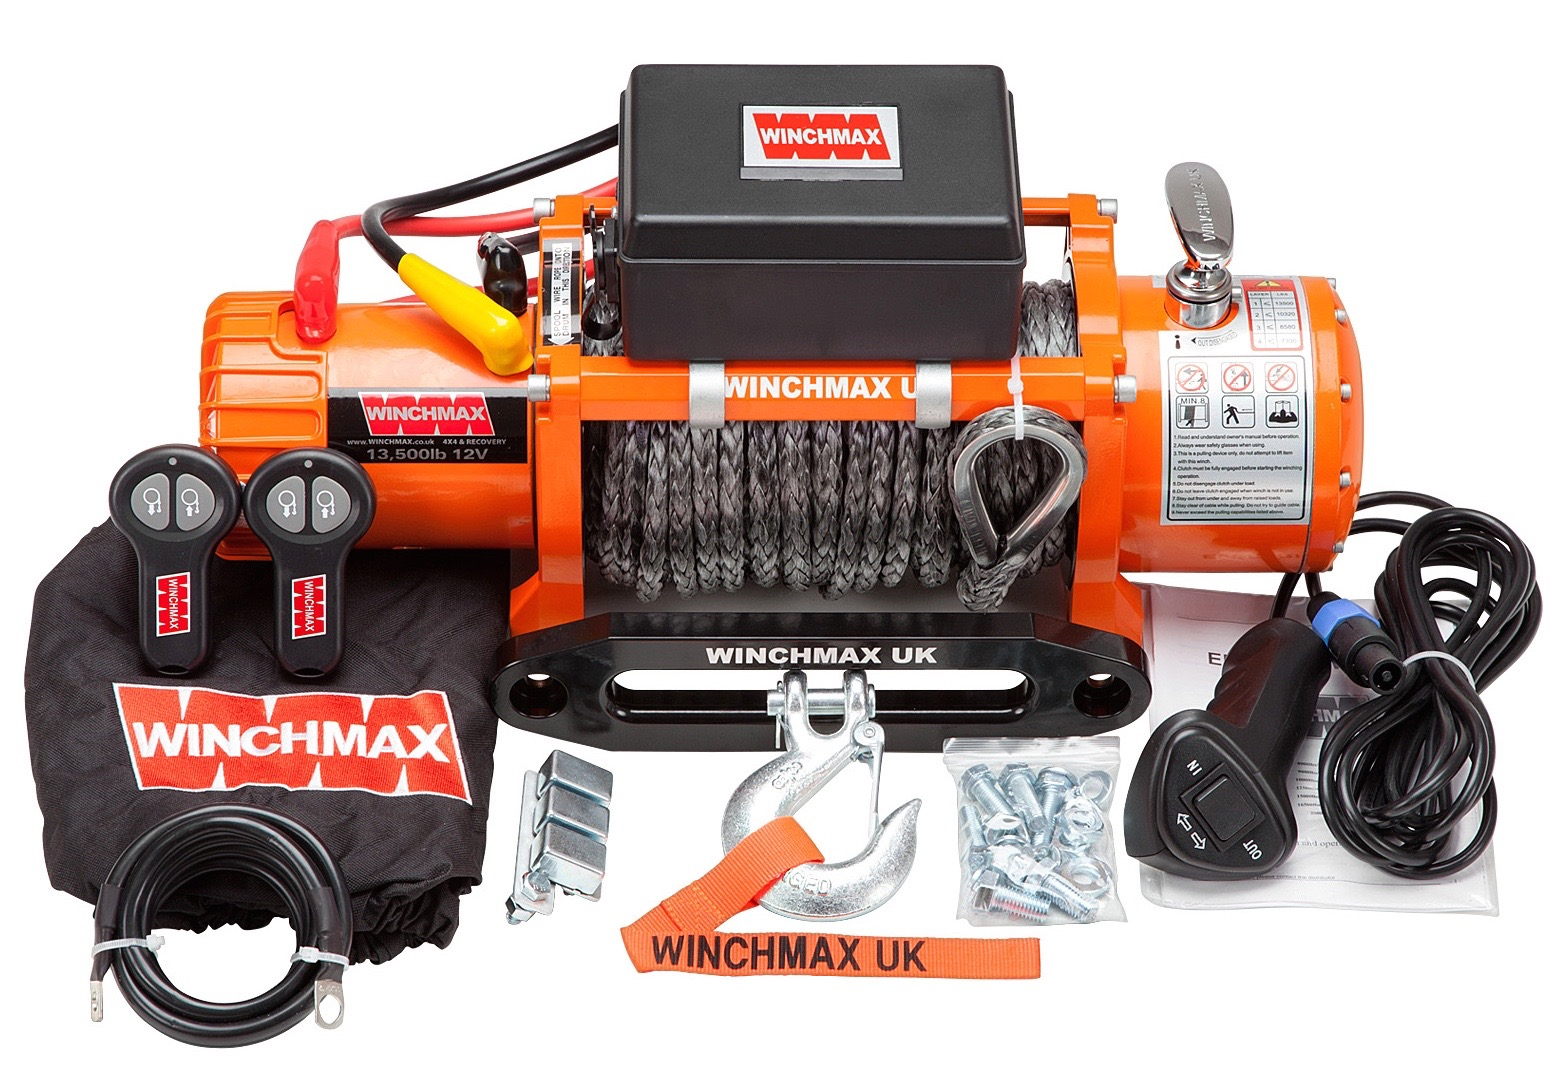 WINCHMAX 24V DYNEEMA ROPE RECOVERY WINCH